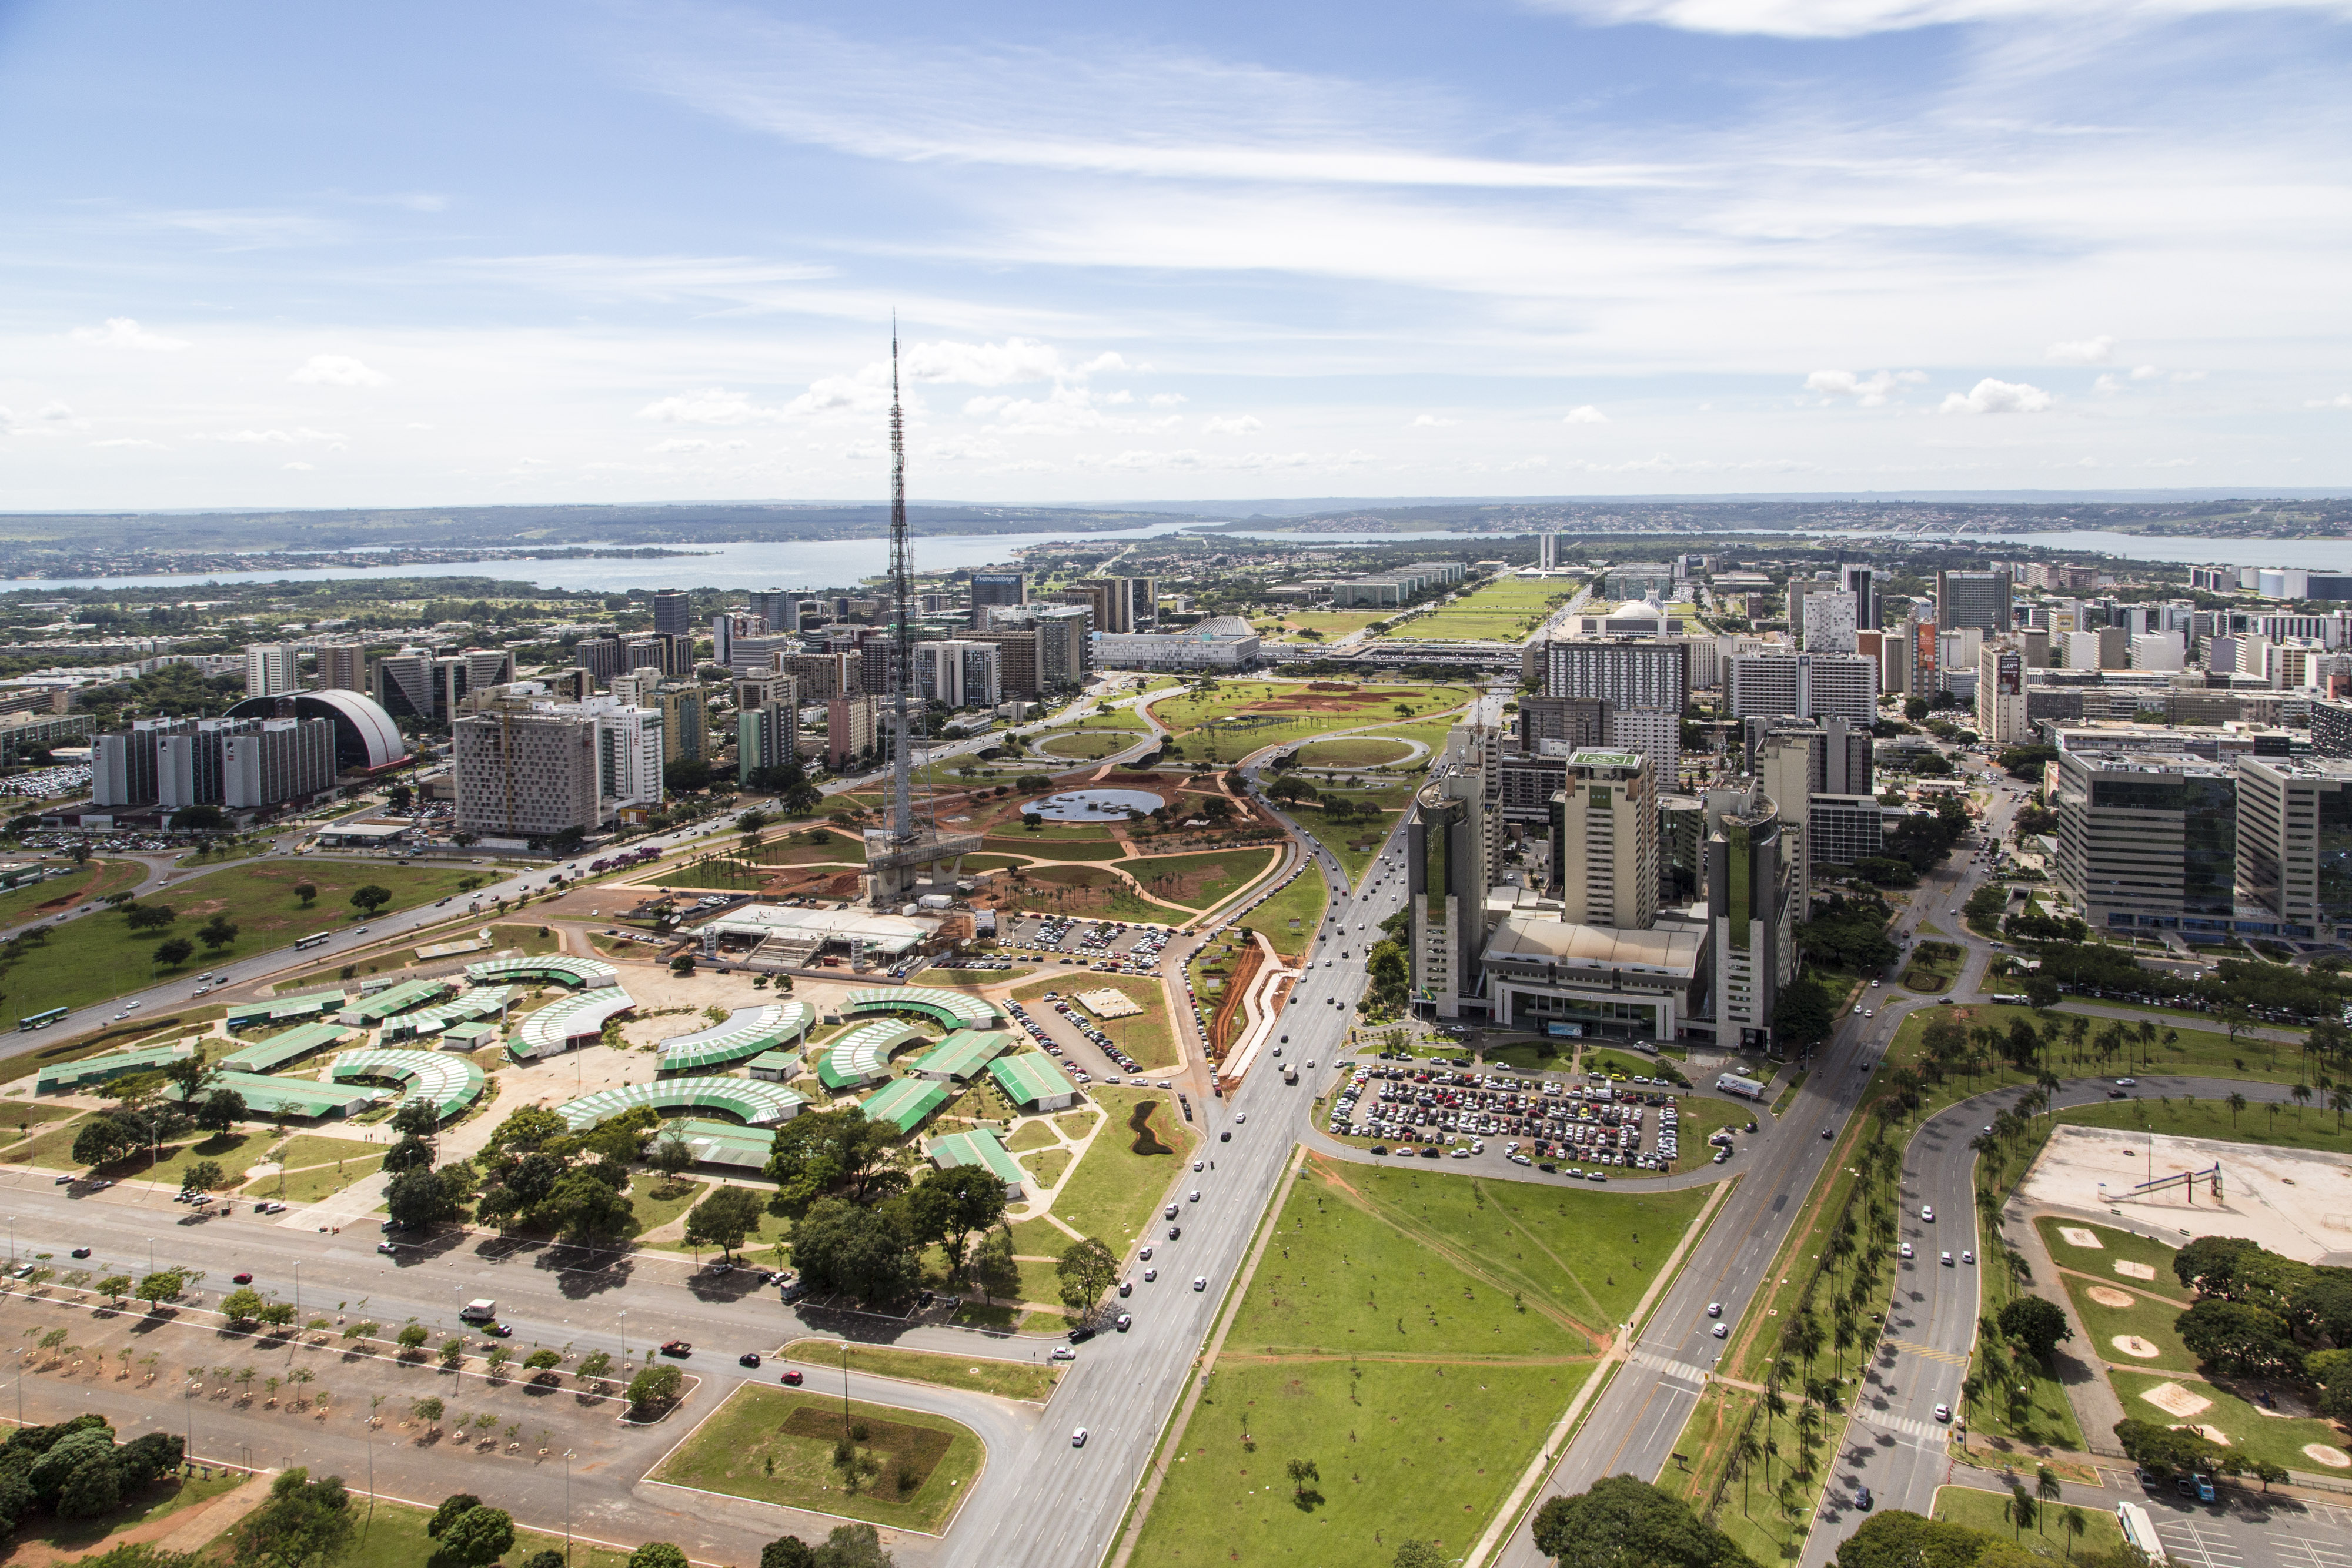 brasilia-is-designed-in-the-shape-of-an-ai-secret-world